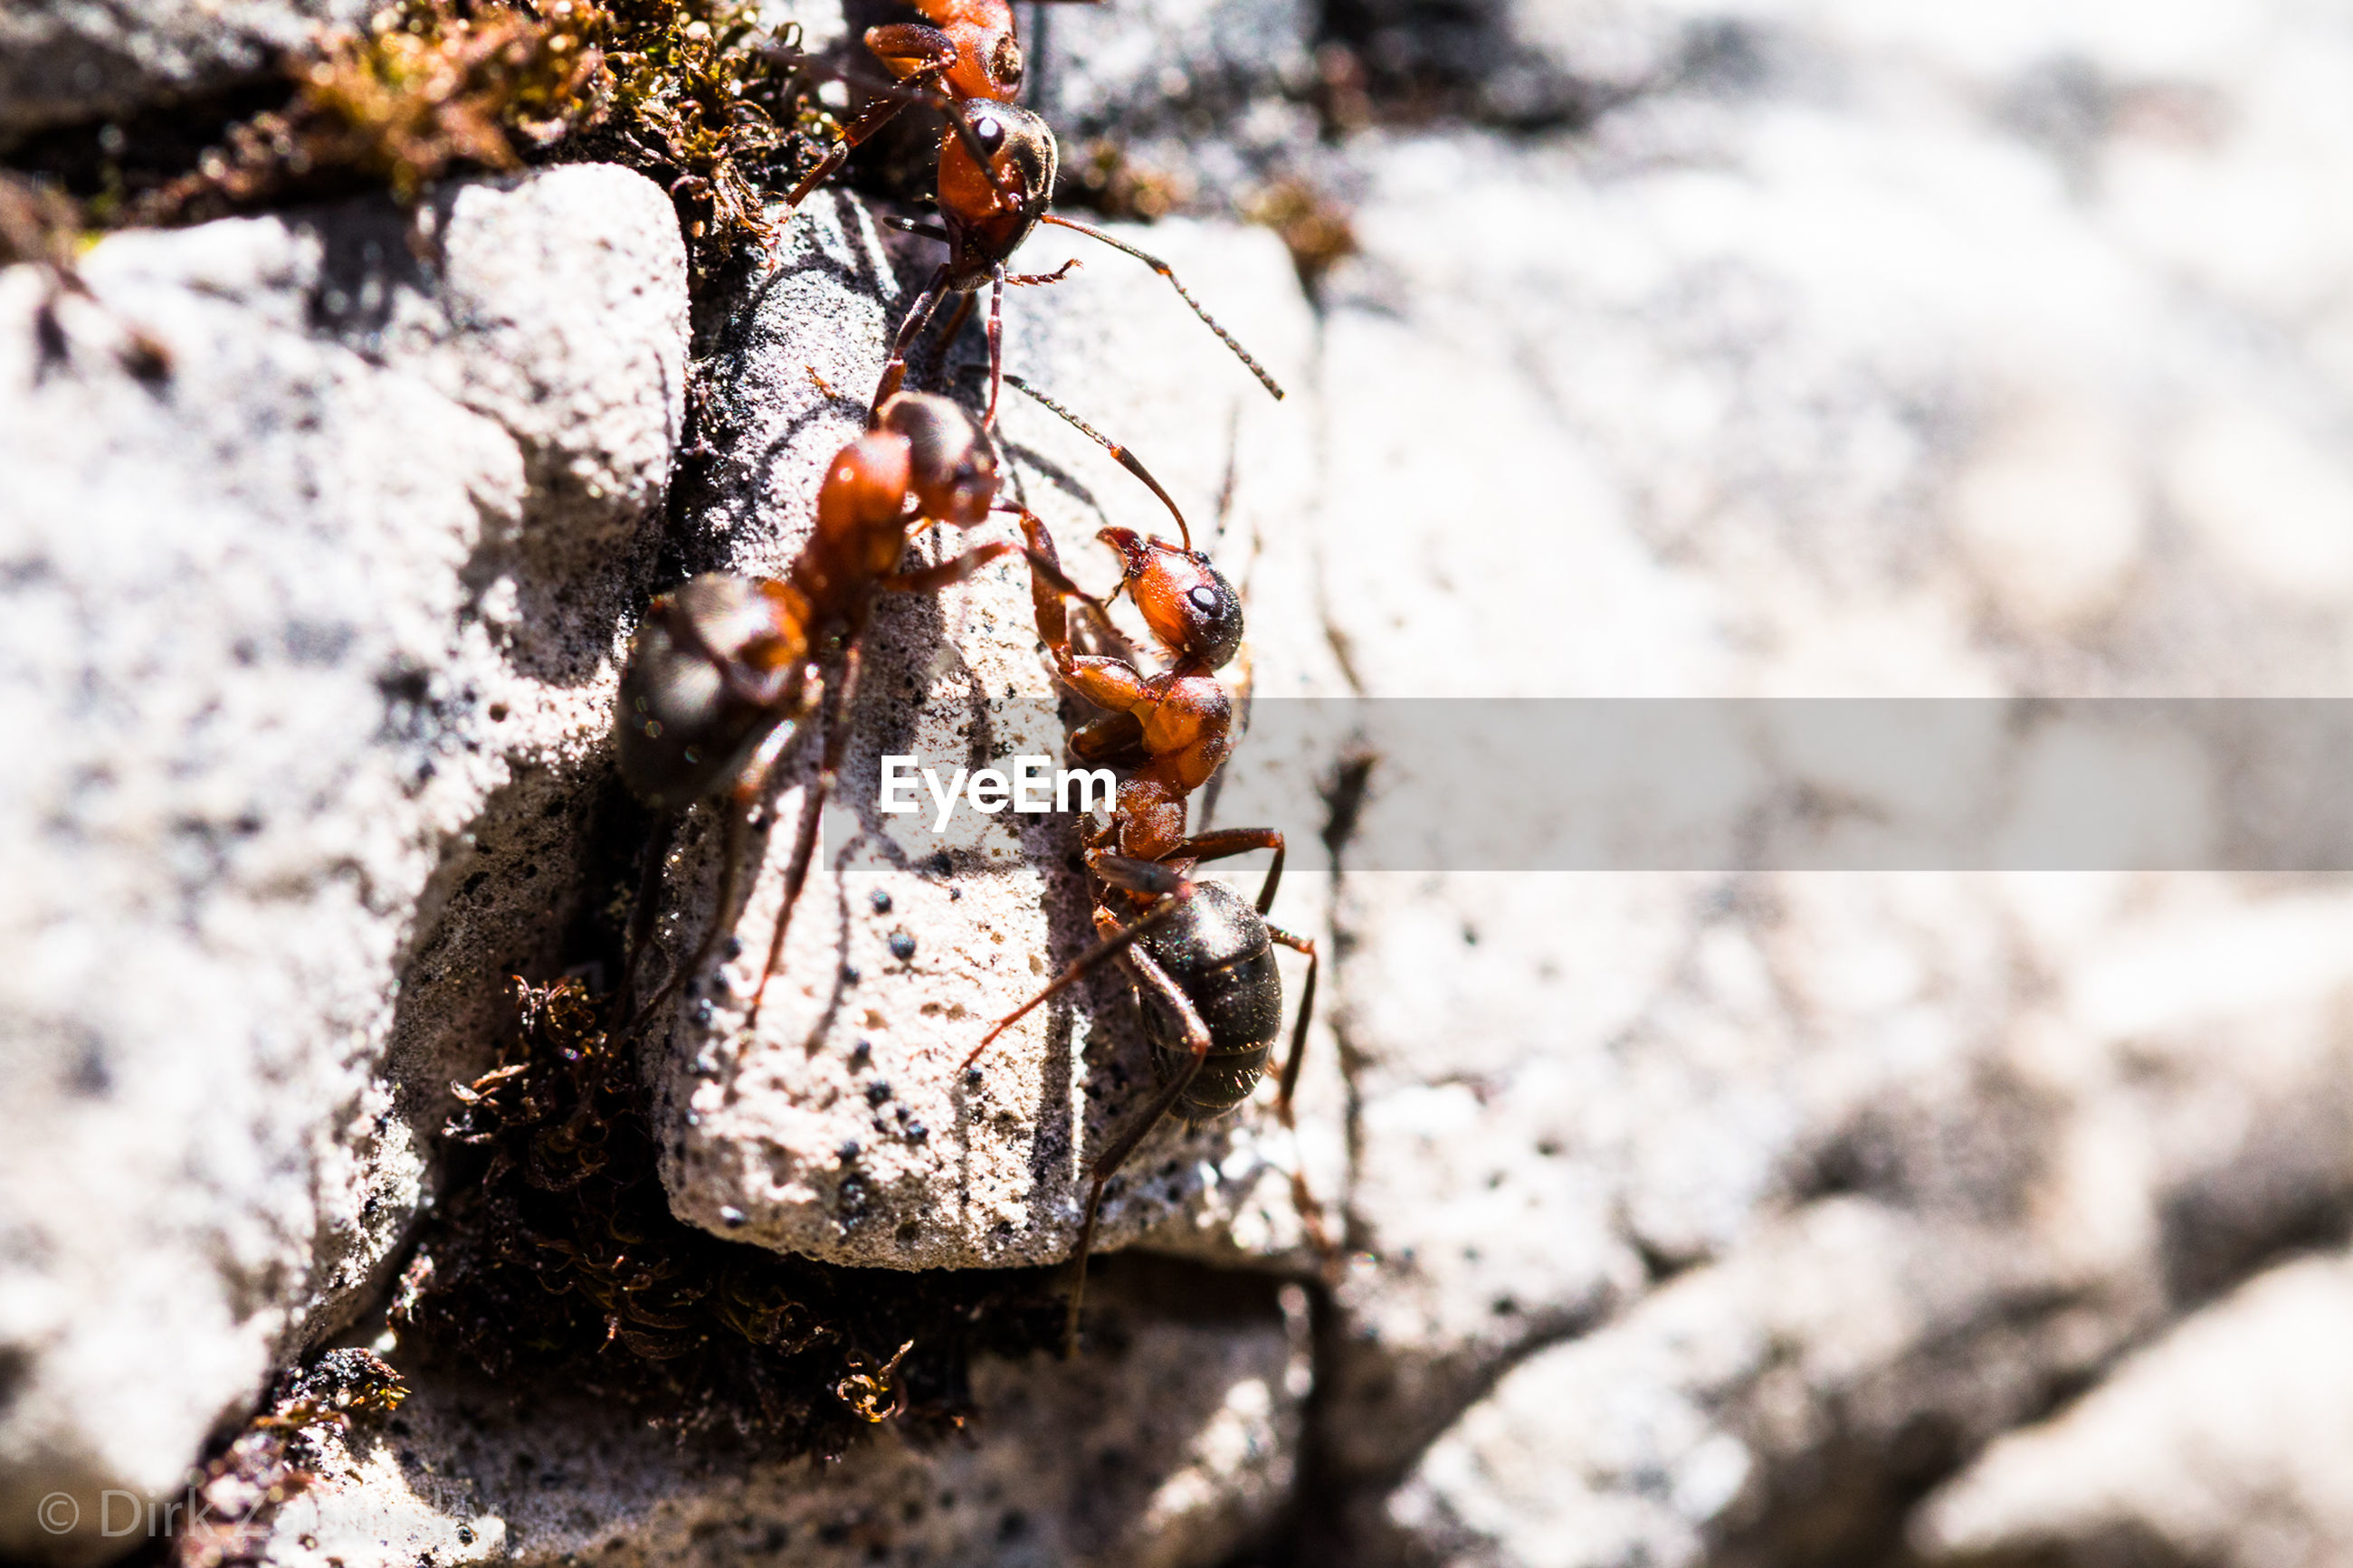 animal, animal themes, animal wildlife, invertebrate, close-up, animals in the wild, insect, day, nature, rock, no people, rock - object, one animal, solid, outdoors, focus on foreground, selective focus, winter, snow